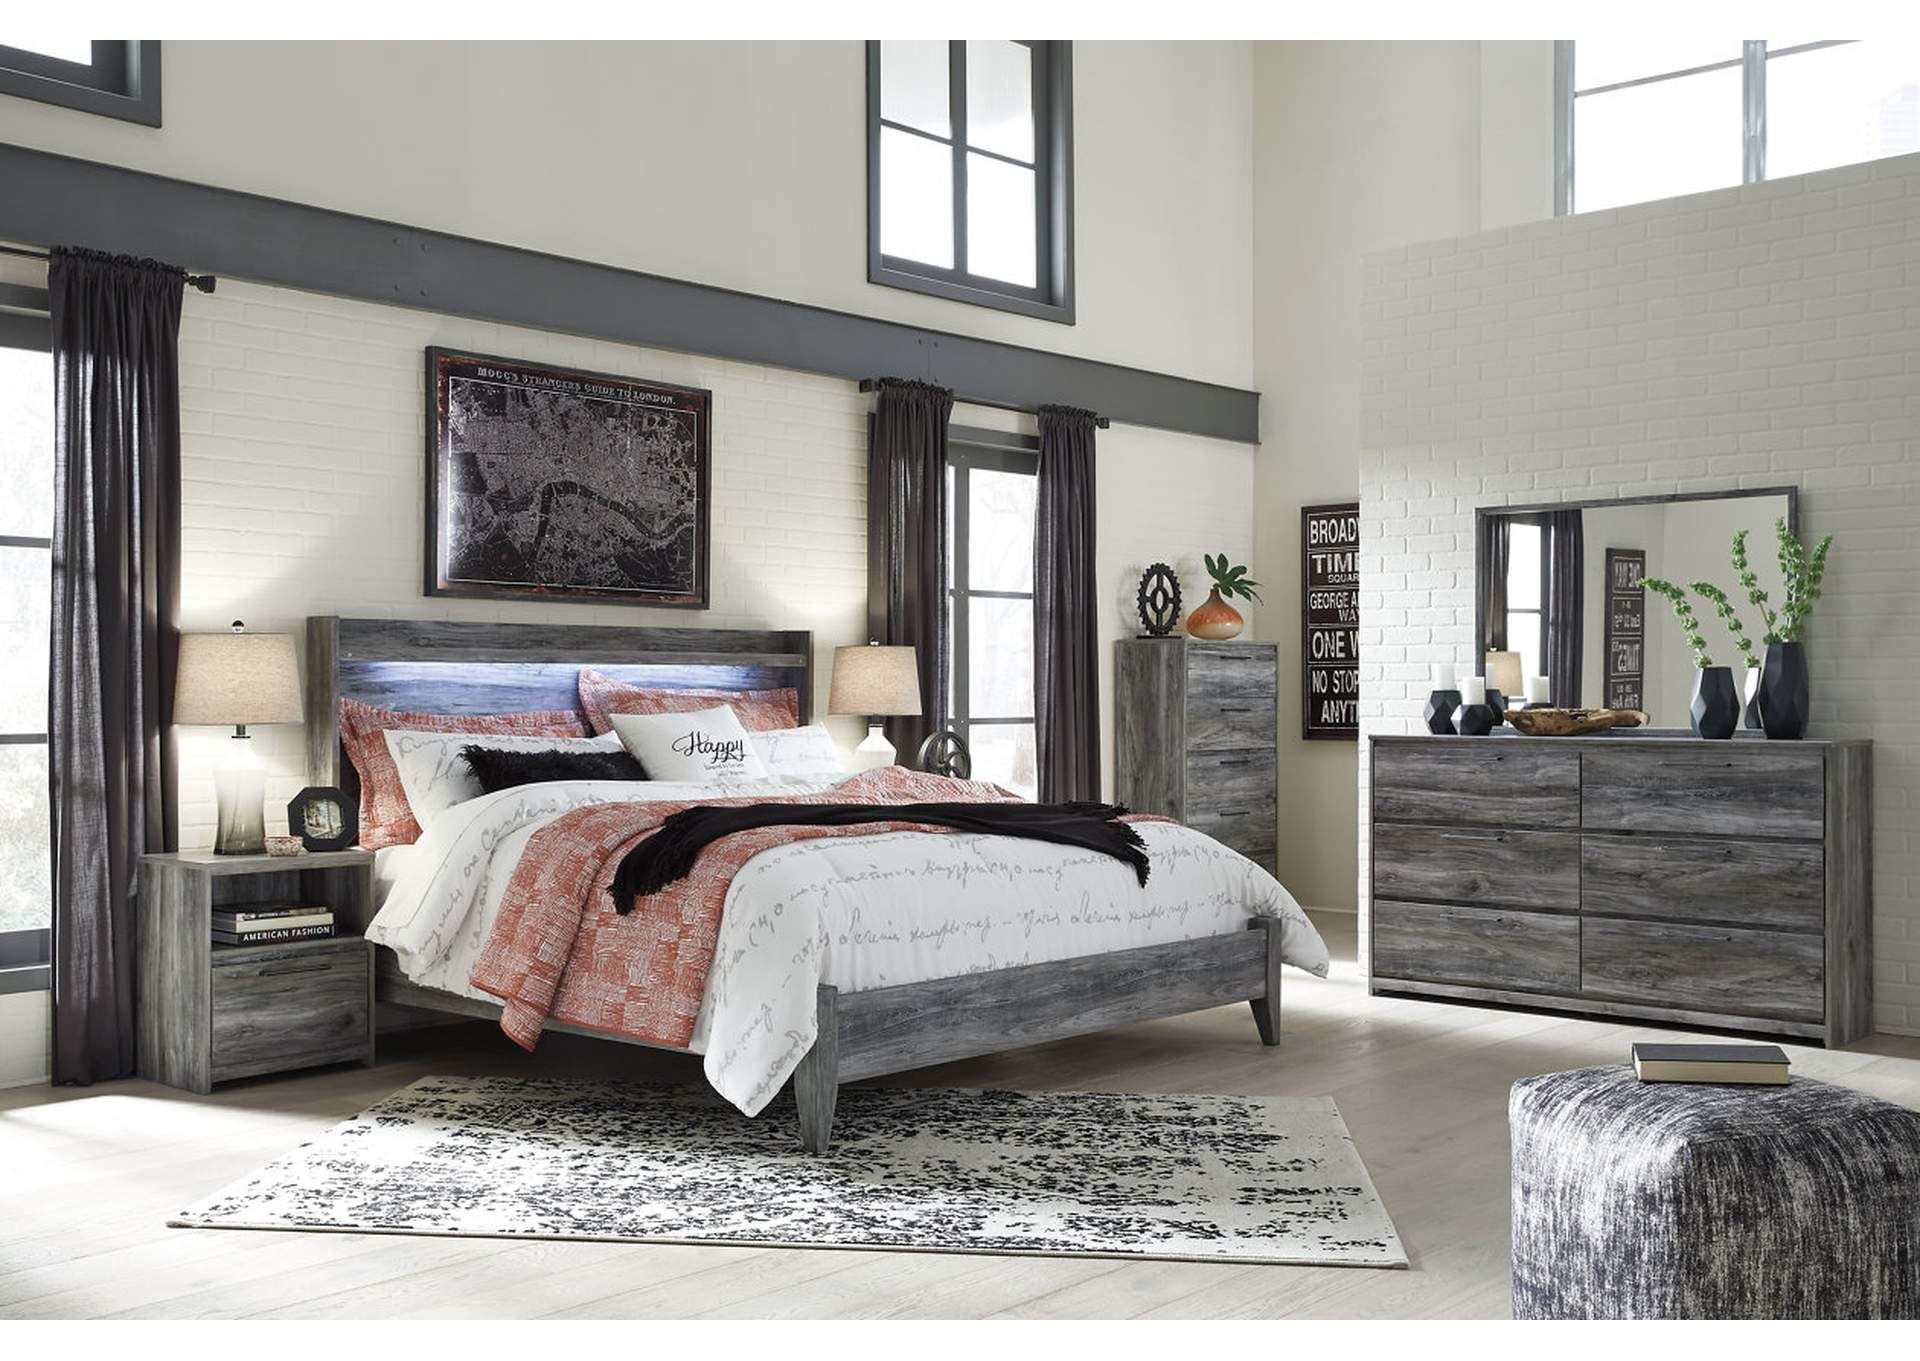 Baystorm Gray King Panel Bed w/Dresser, Mirror, Drawer Chest & Nightstand,Signature Design By Ashley